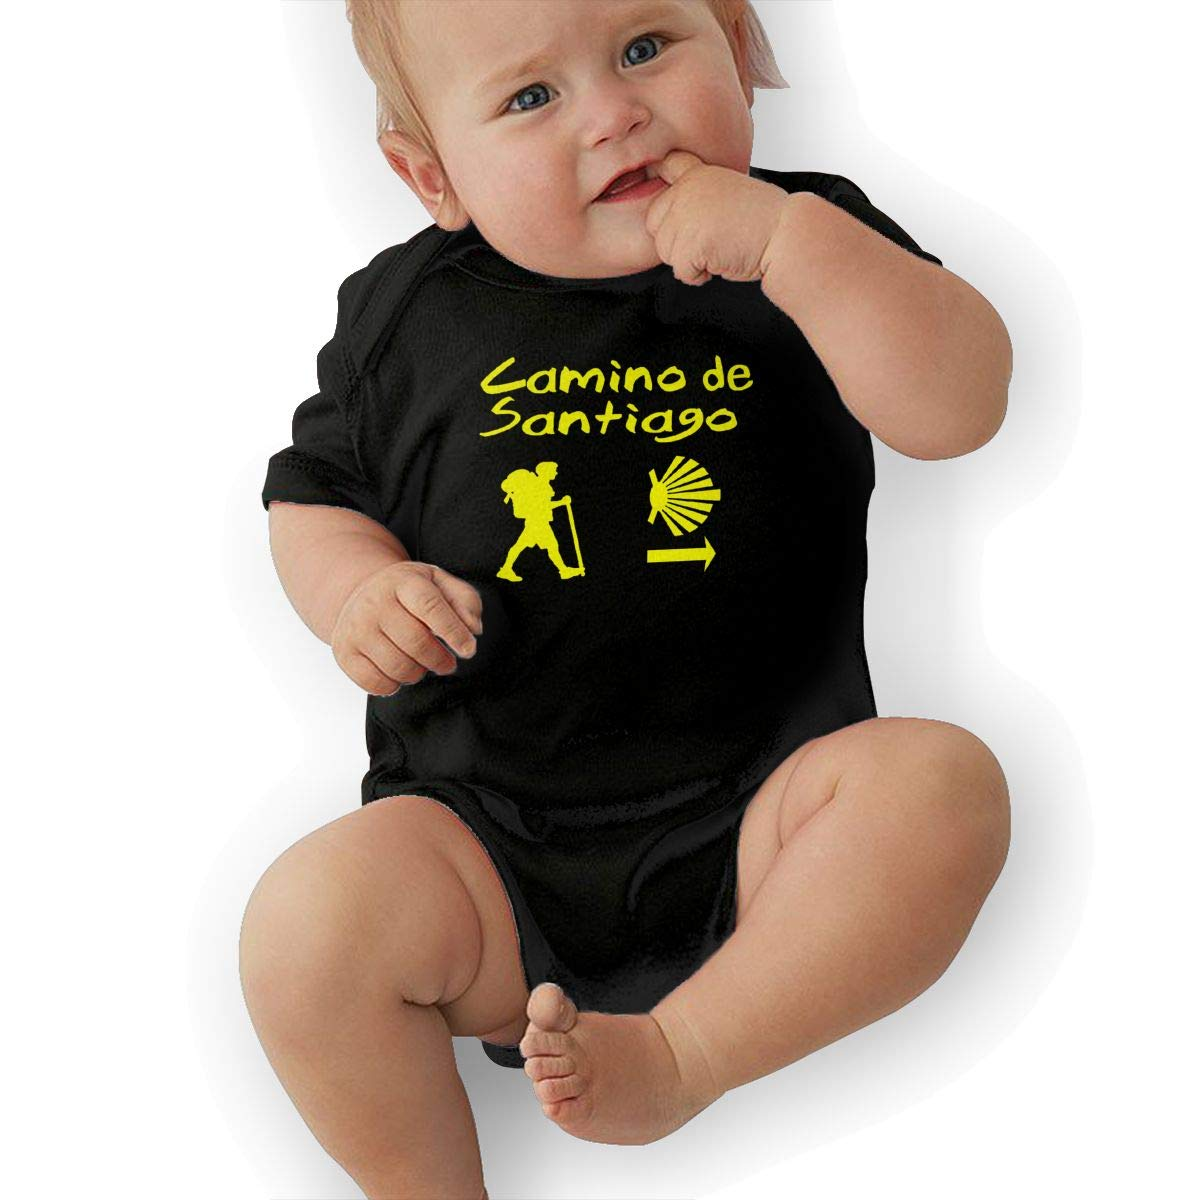 0-24 Months Serity Camino De Santiago Compostela Baby Short-Sleeve Baby Climbing Clothes Playsuit Outfits with Bib for New Born Boys /& Girls